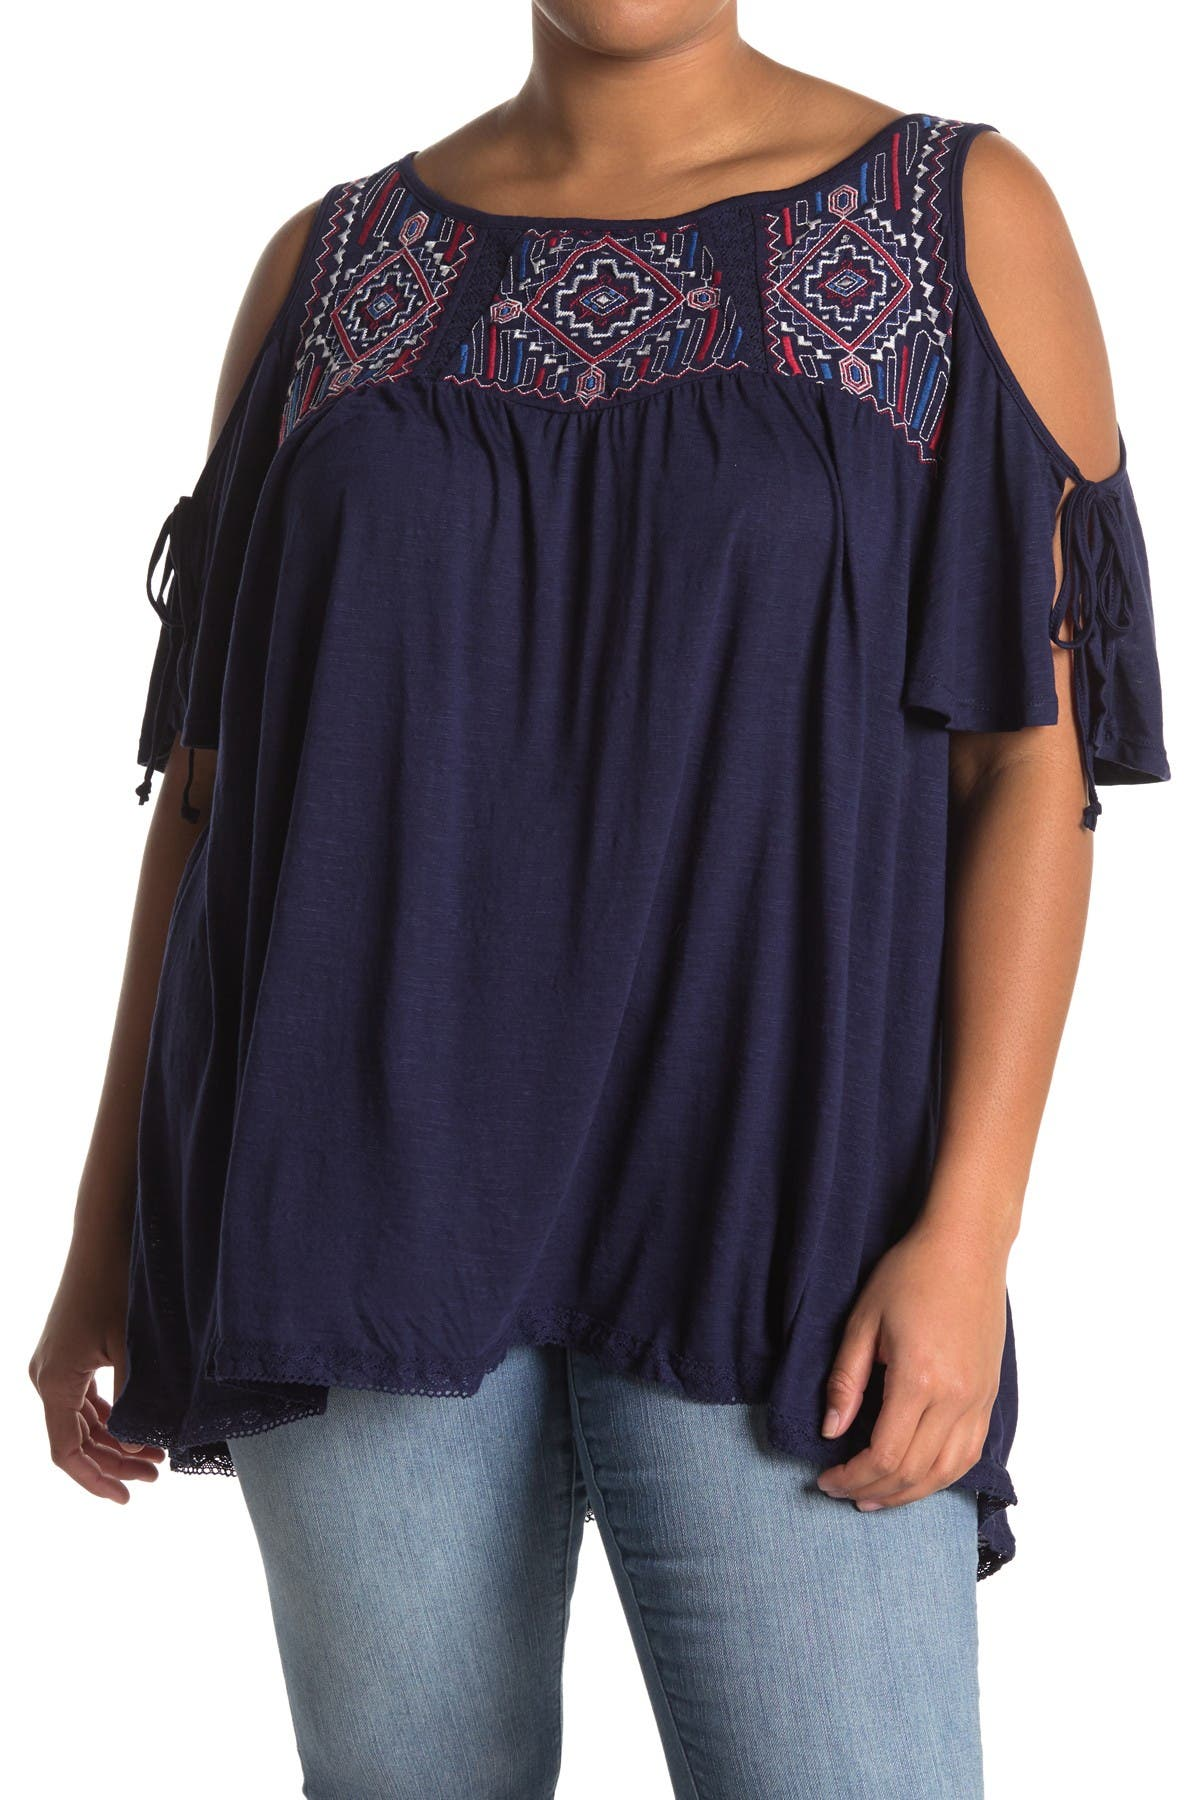 Image of 14TH PLACE Embroidered Cold Shoulder Top